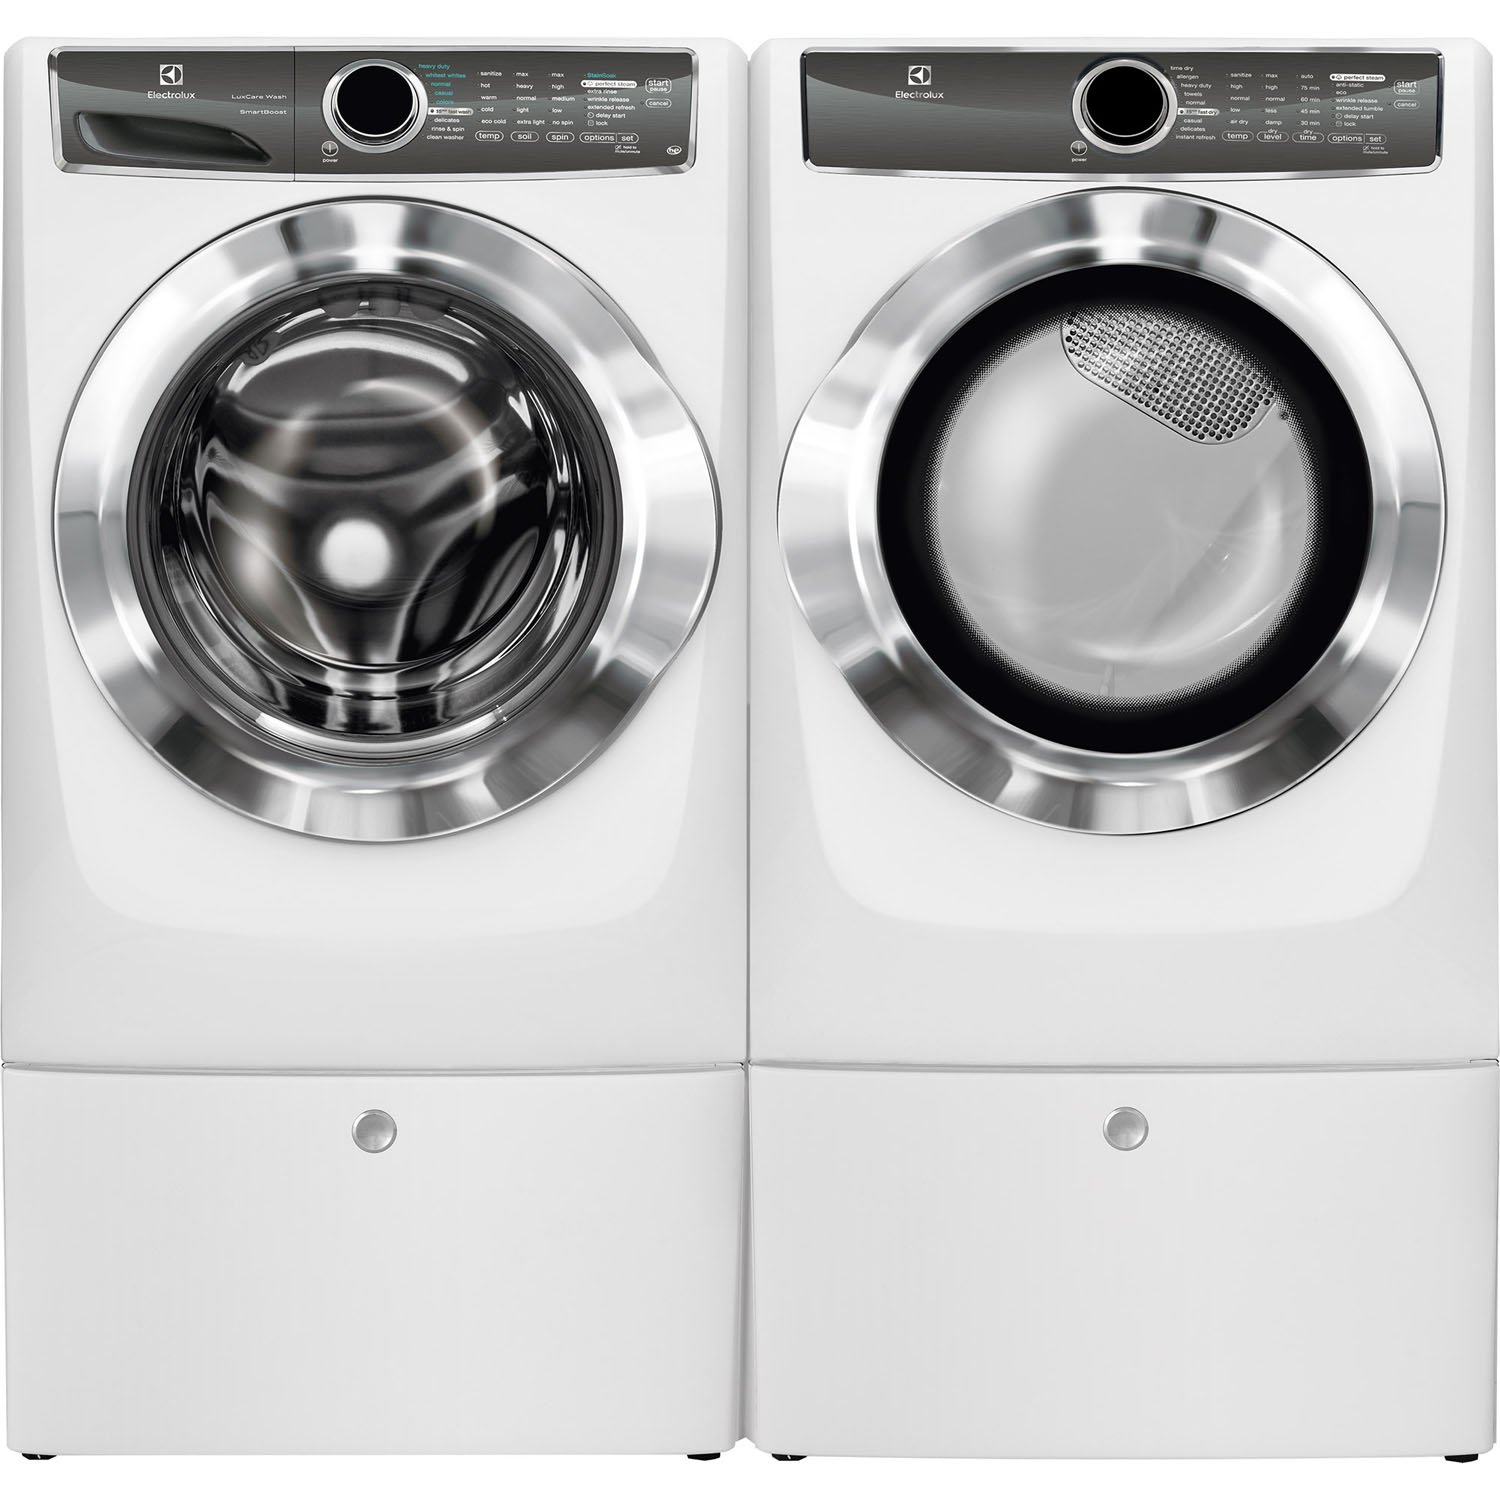 with looks pedestal electrolux great whirpool washer for leaking amana load white gorgeous doors wont washing front ideas machine open door design